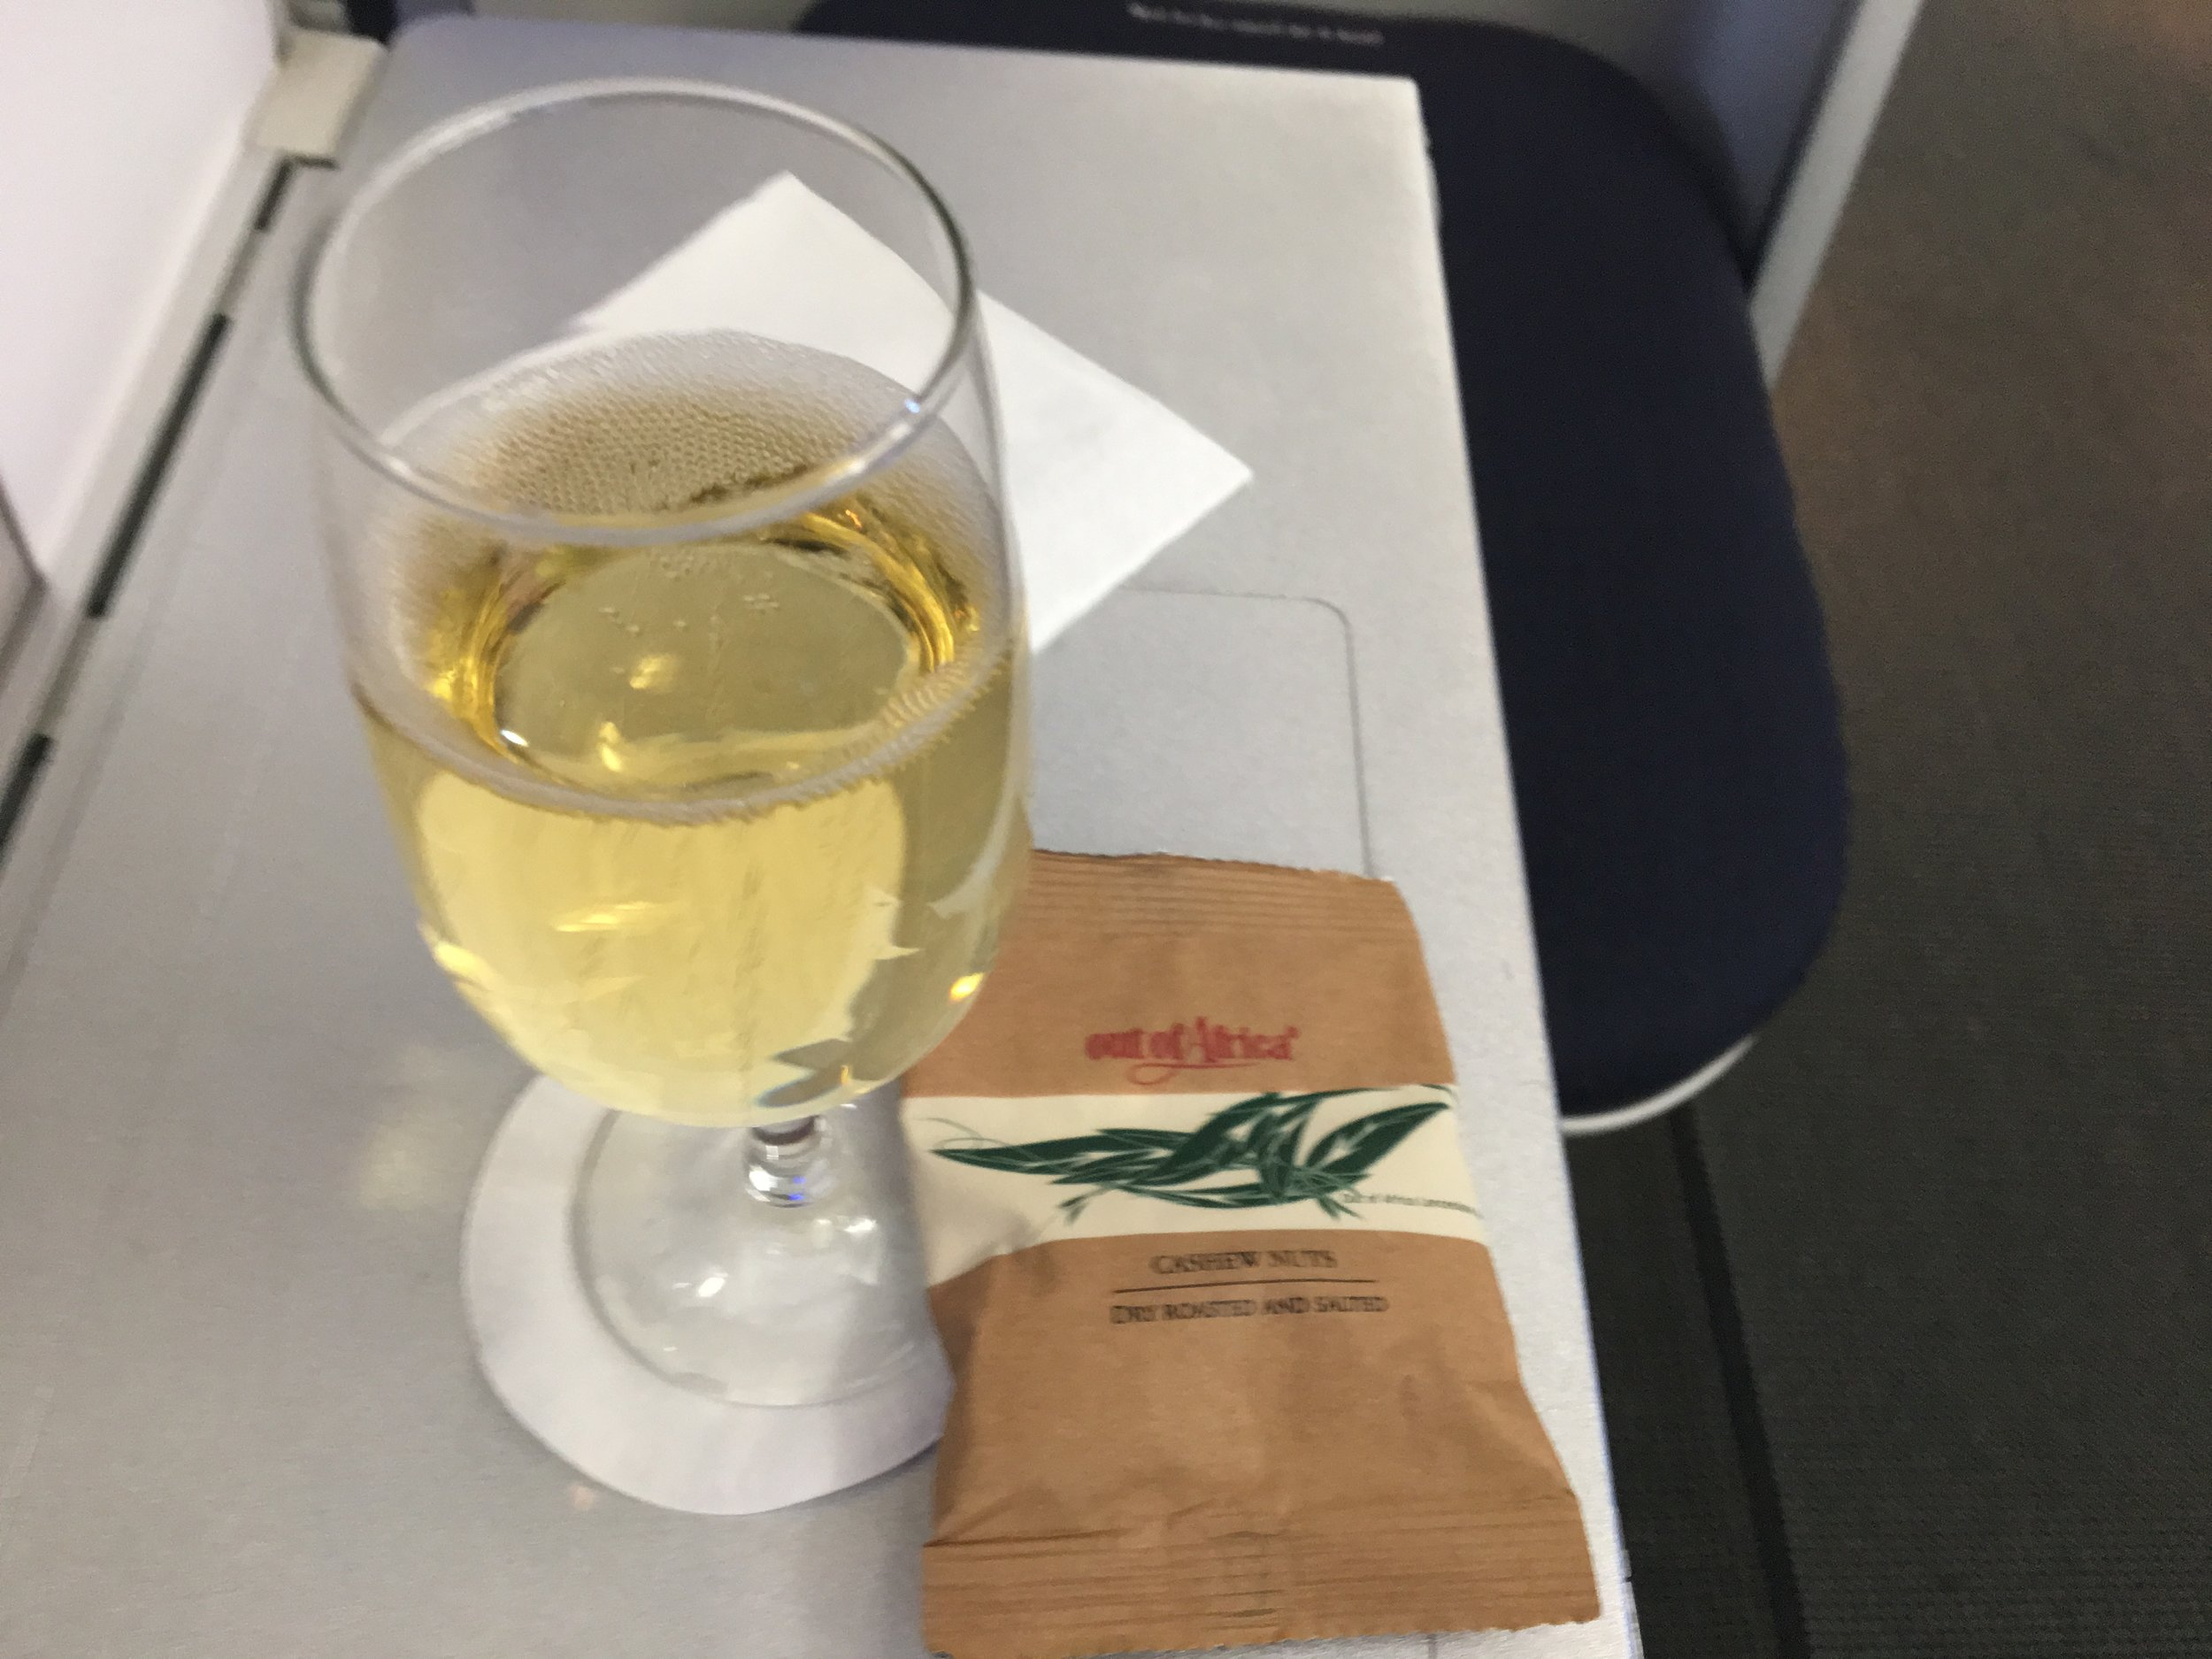 Celebrating my upgrade with a little champagne and a snack on the upper deck of this British Airways 747.